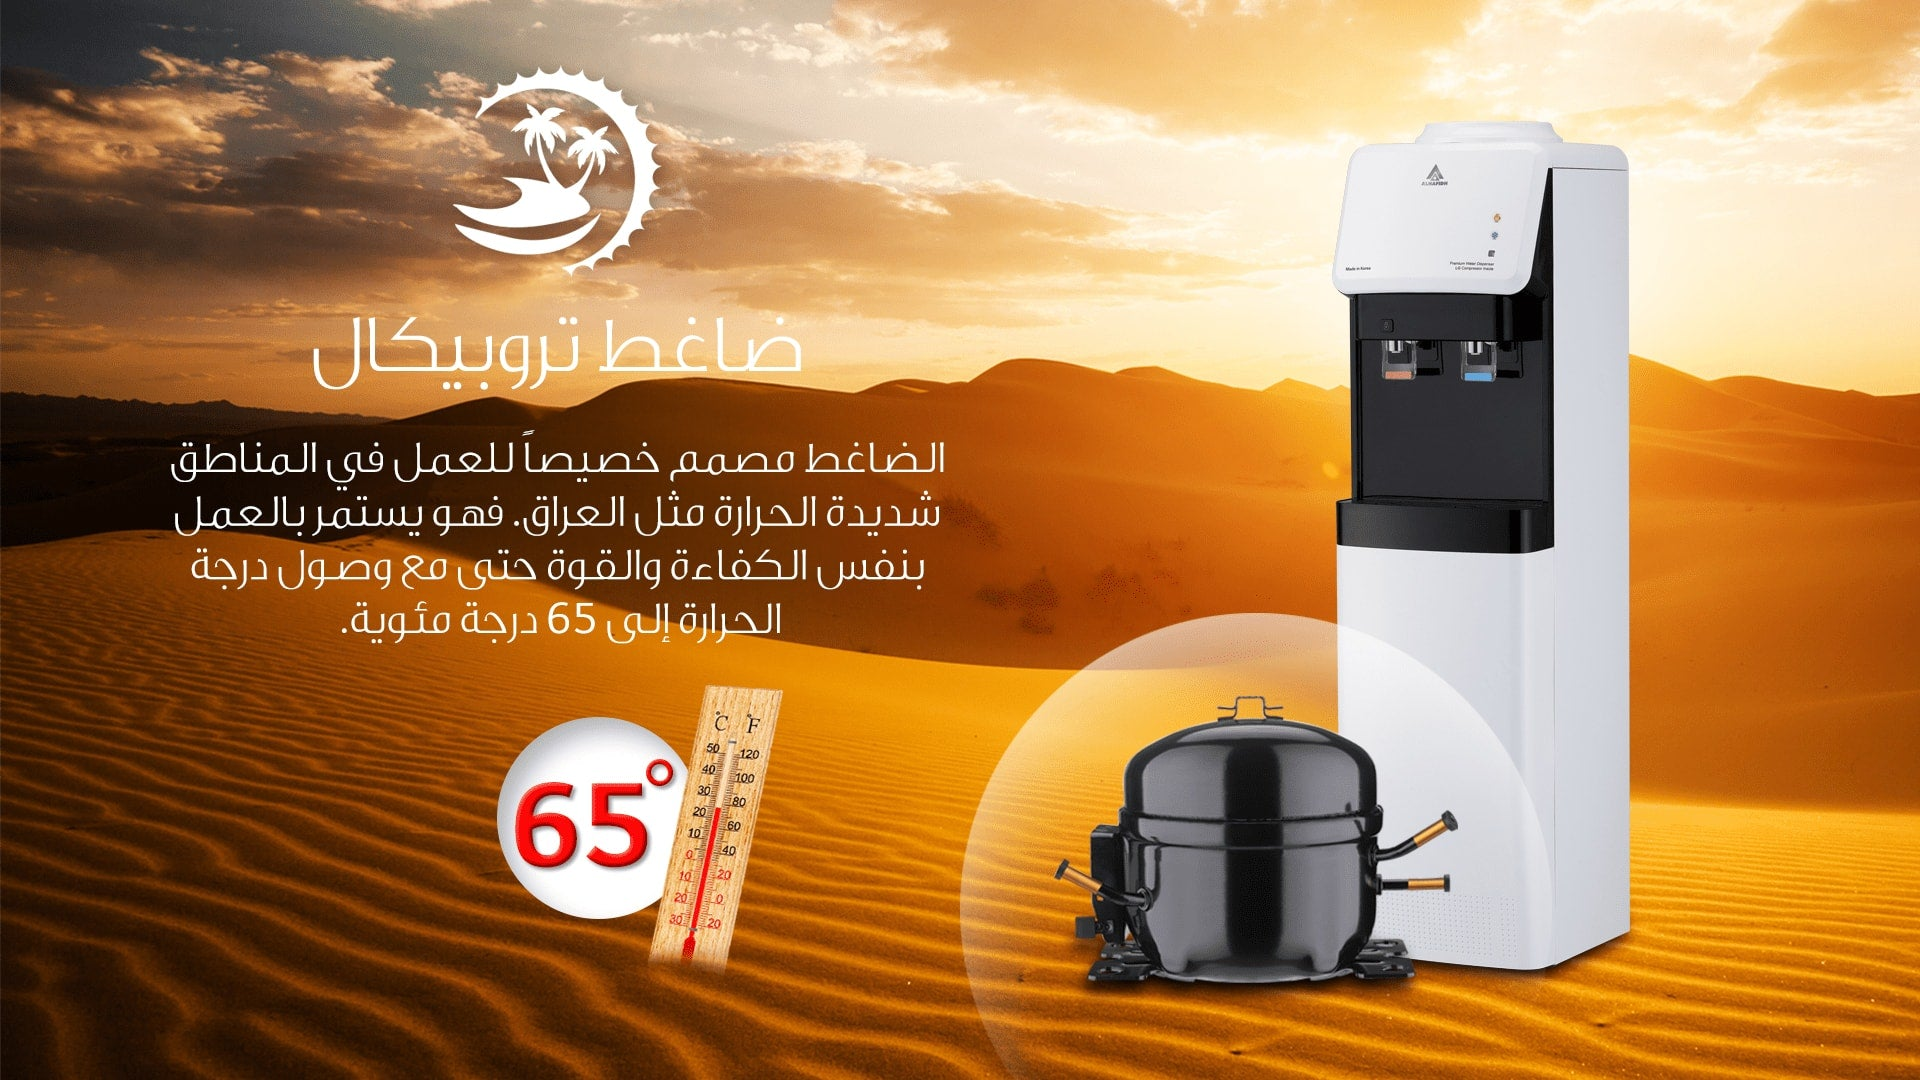 feature Tropical Compressor ALHAFIDH DHA-99KWB3 Tap Free Standing Water Dispenser